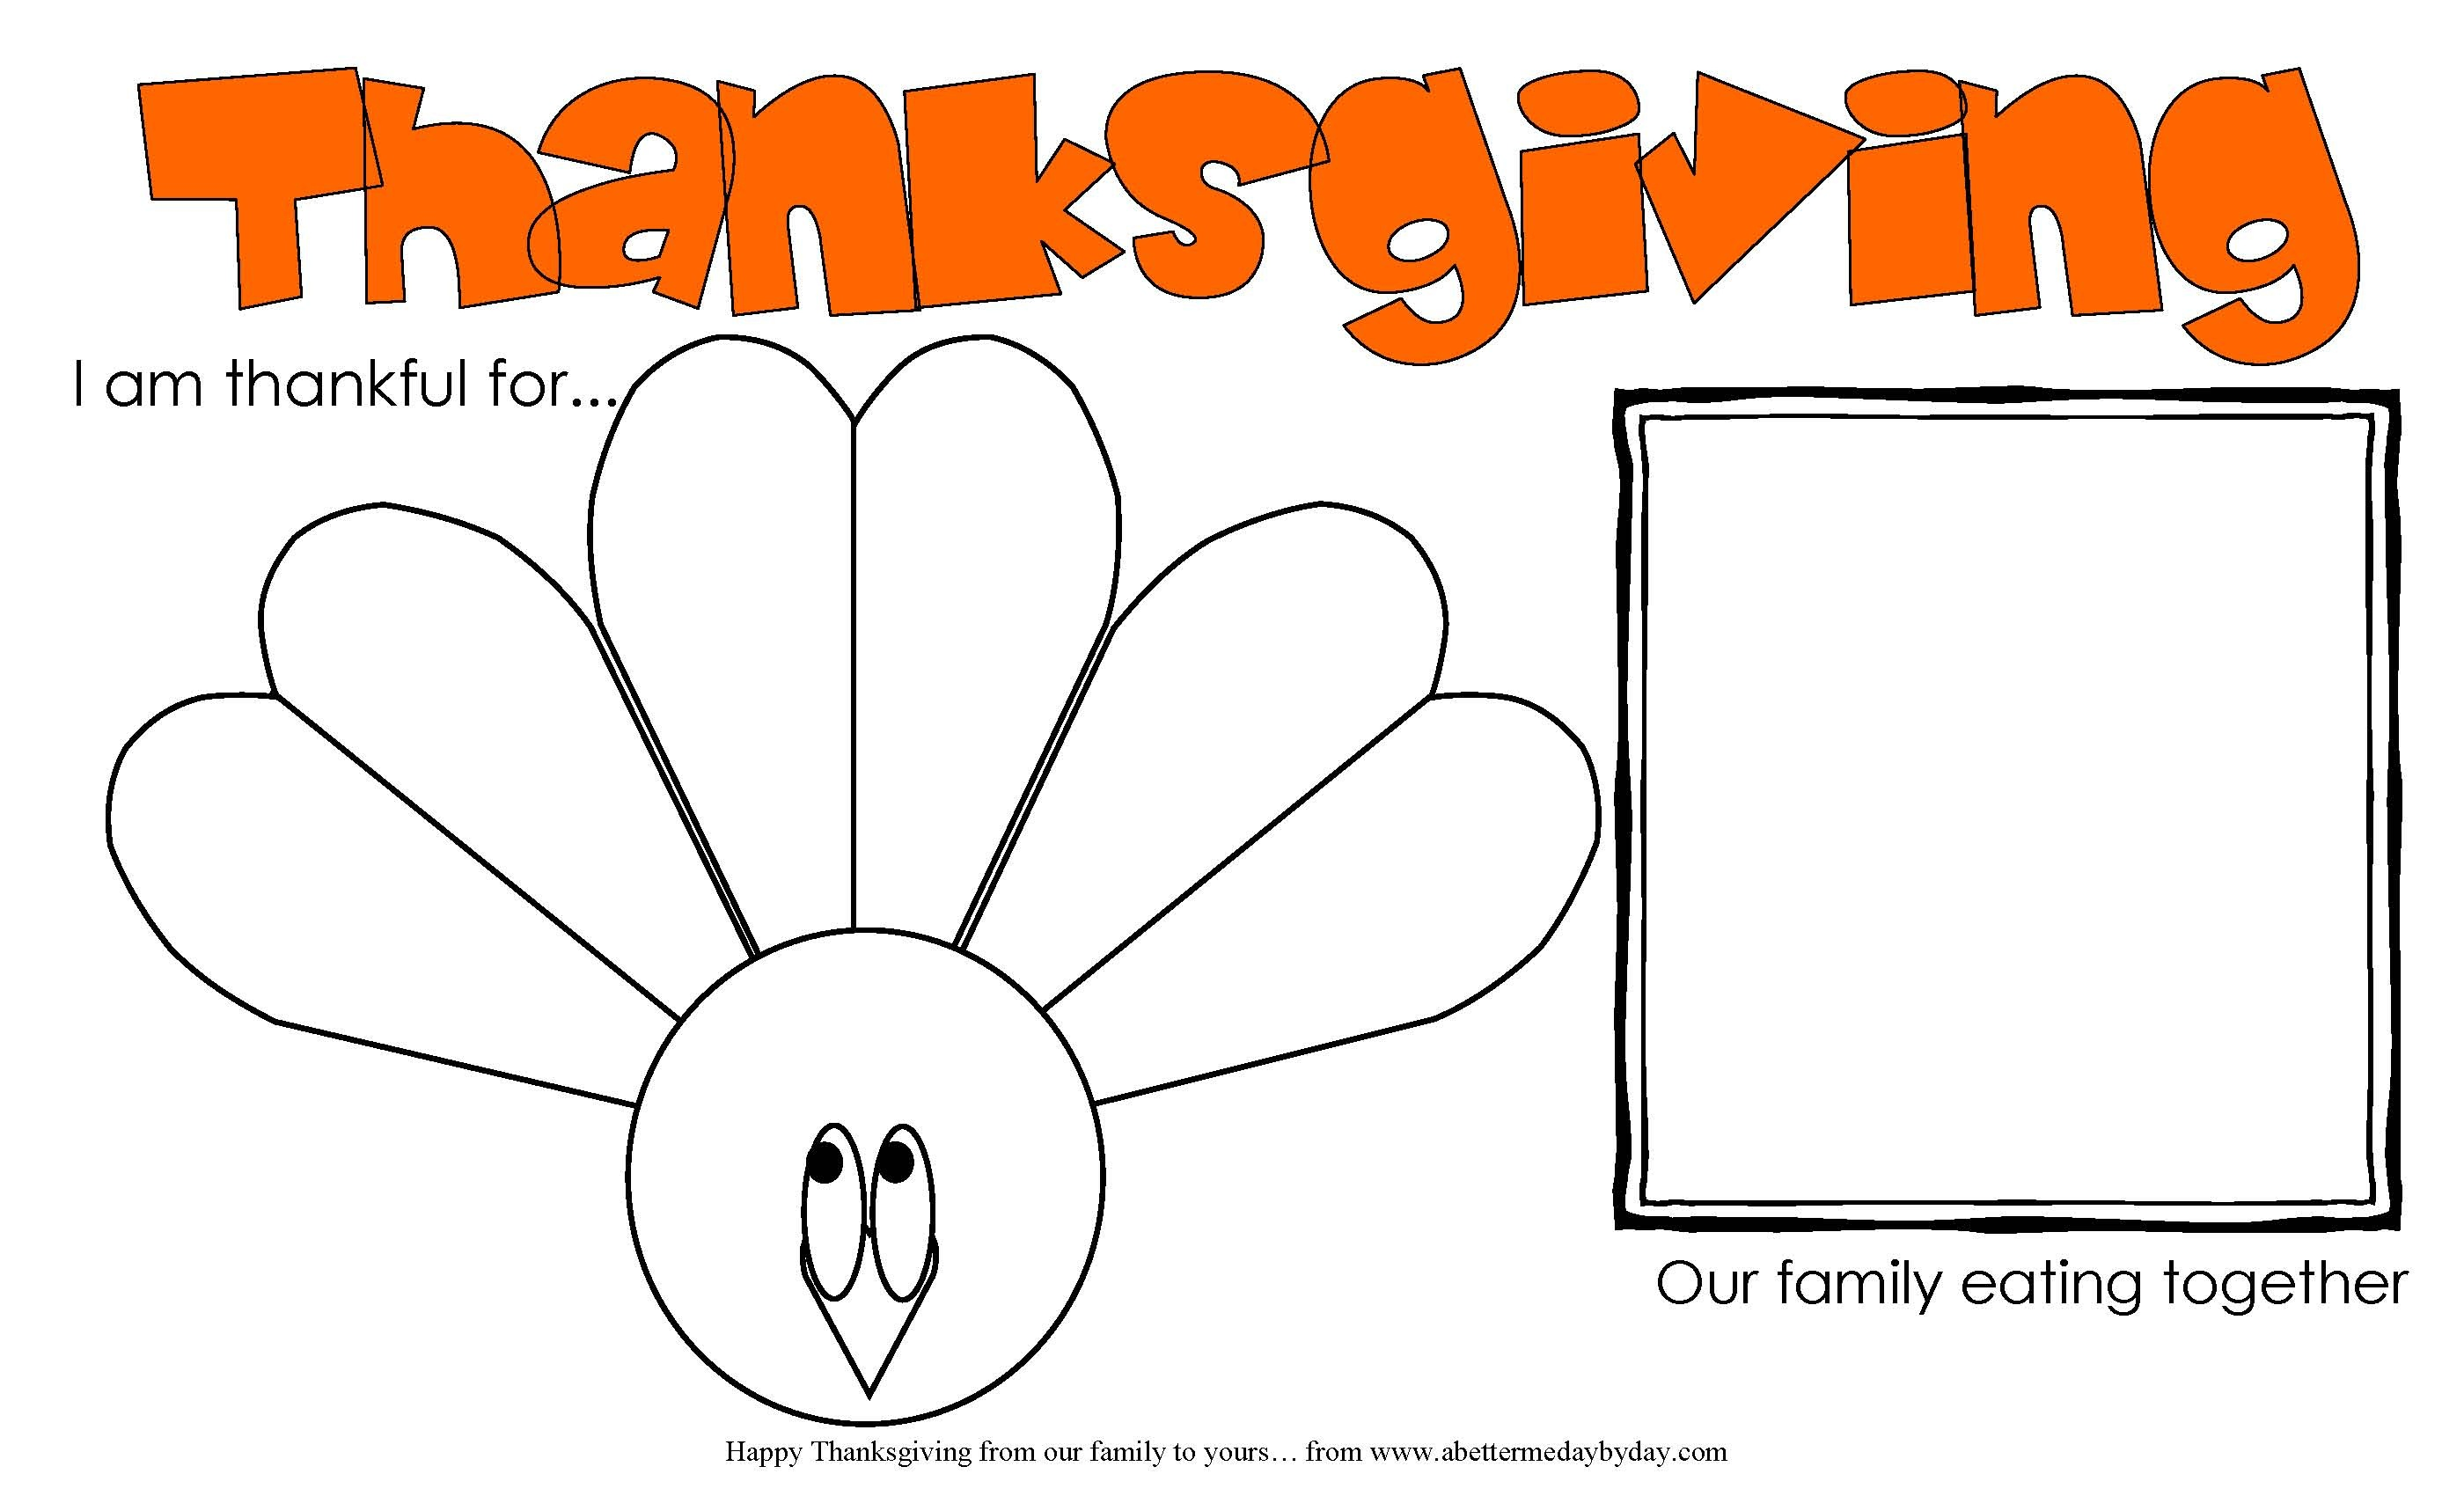 Free Printable: Thanksgiving Activity Place Mat For Kids And Adults - Free Printable Thanksgiving Activities For Preschoolers